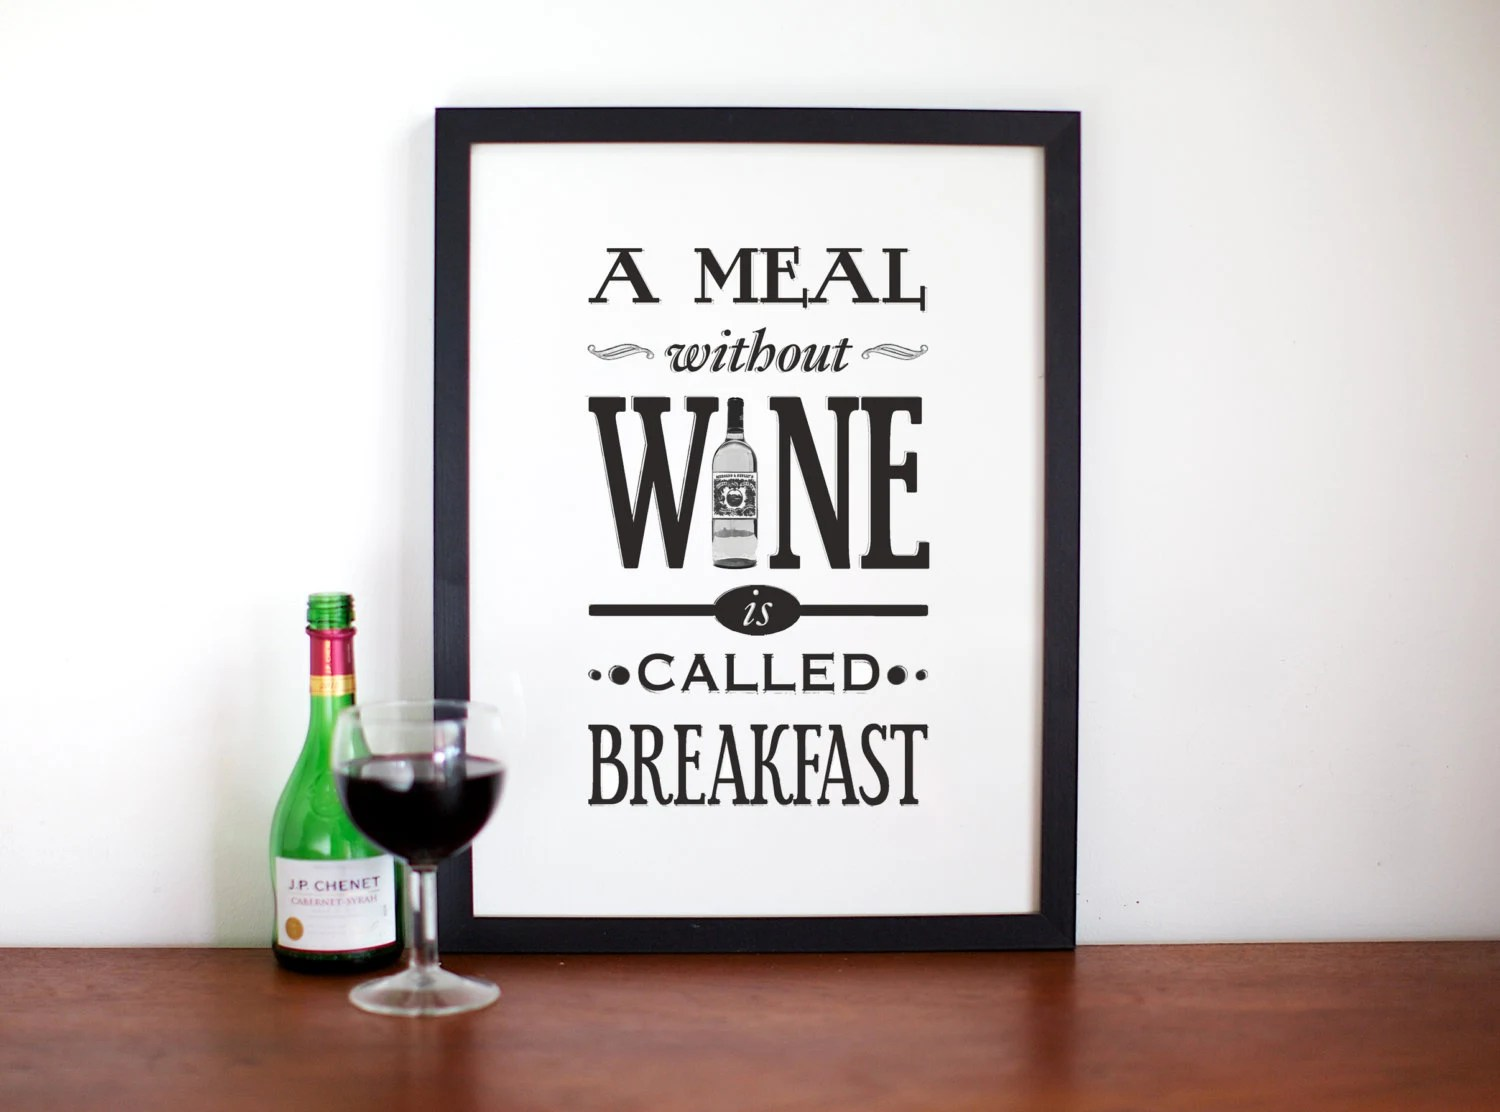 Küche Magazin Logo Wine Poster A Meal Without Wine Kitchen Art Wine Print